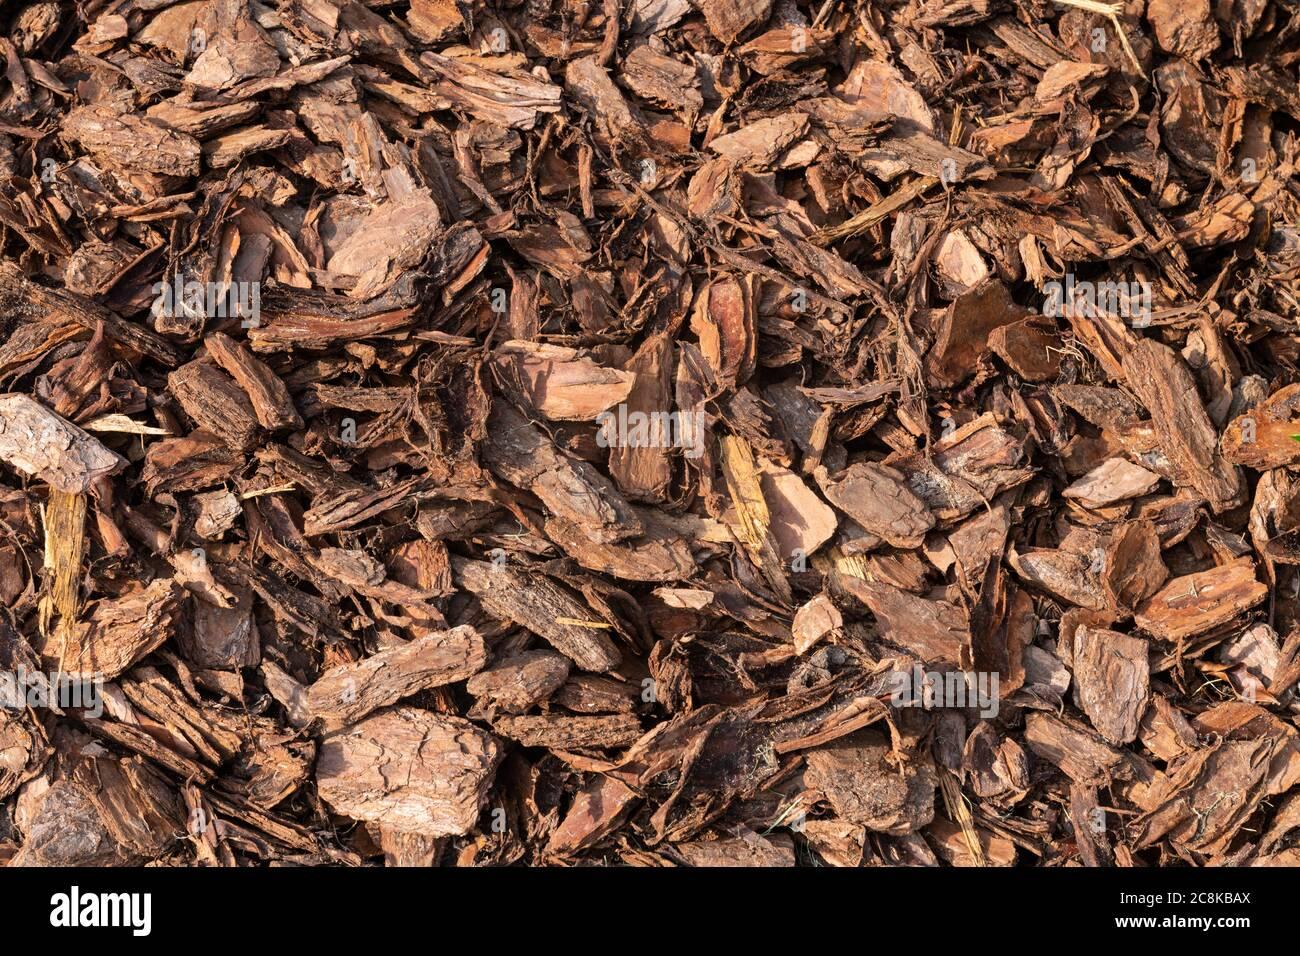 A Pine Bark Mulch Background Shot In The Afternoon Sun Stock Photo Alamy